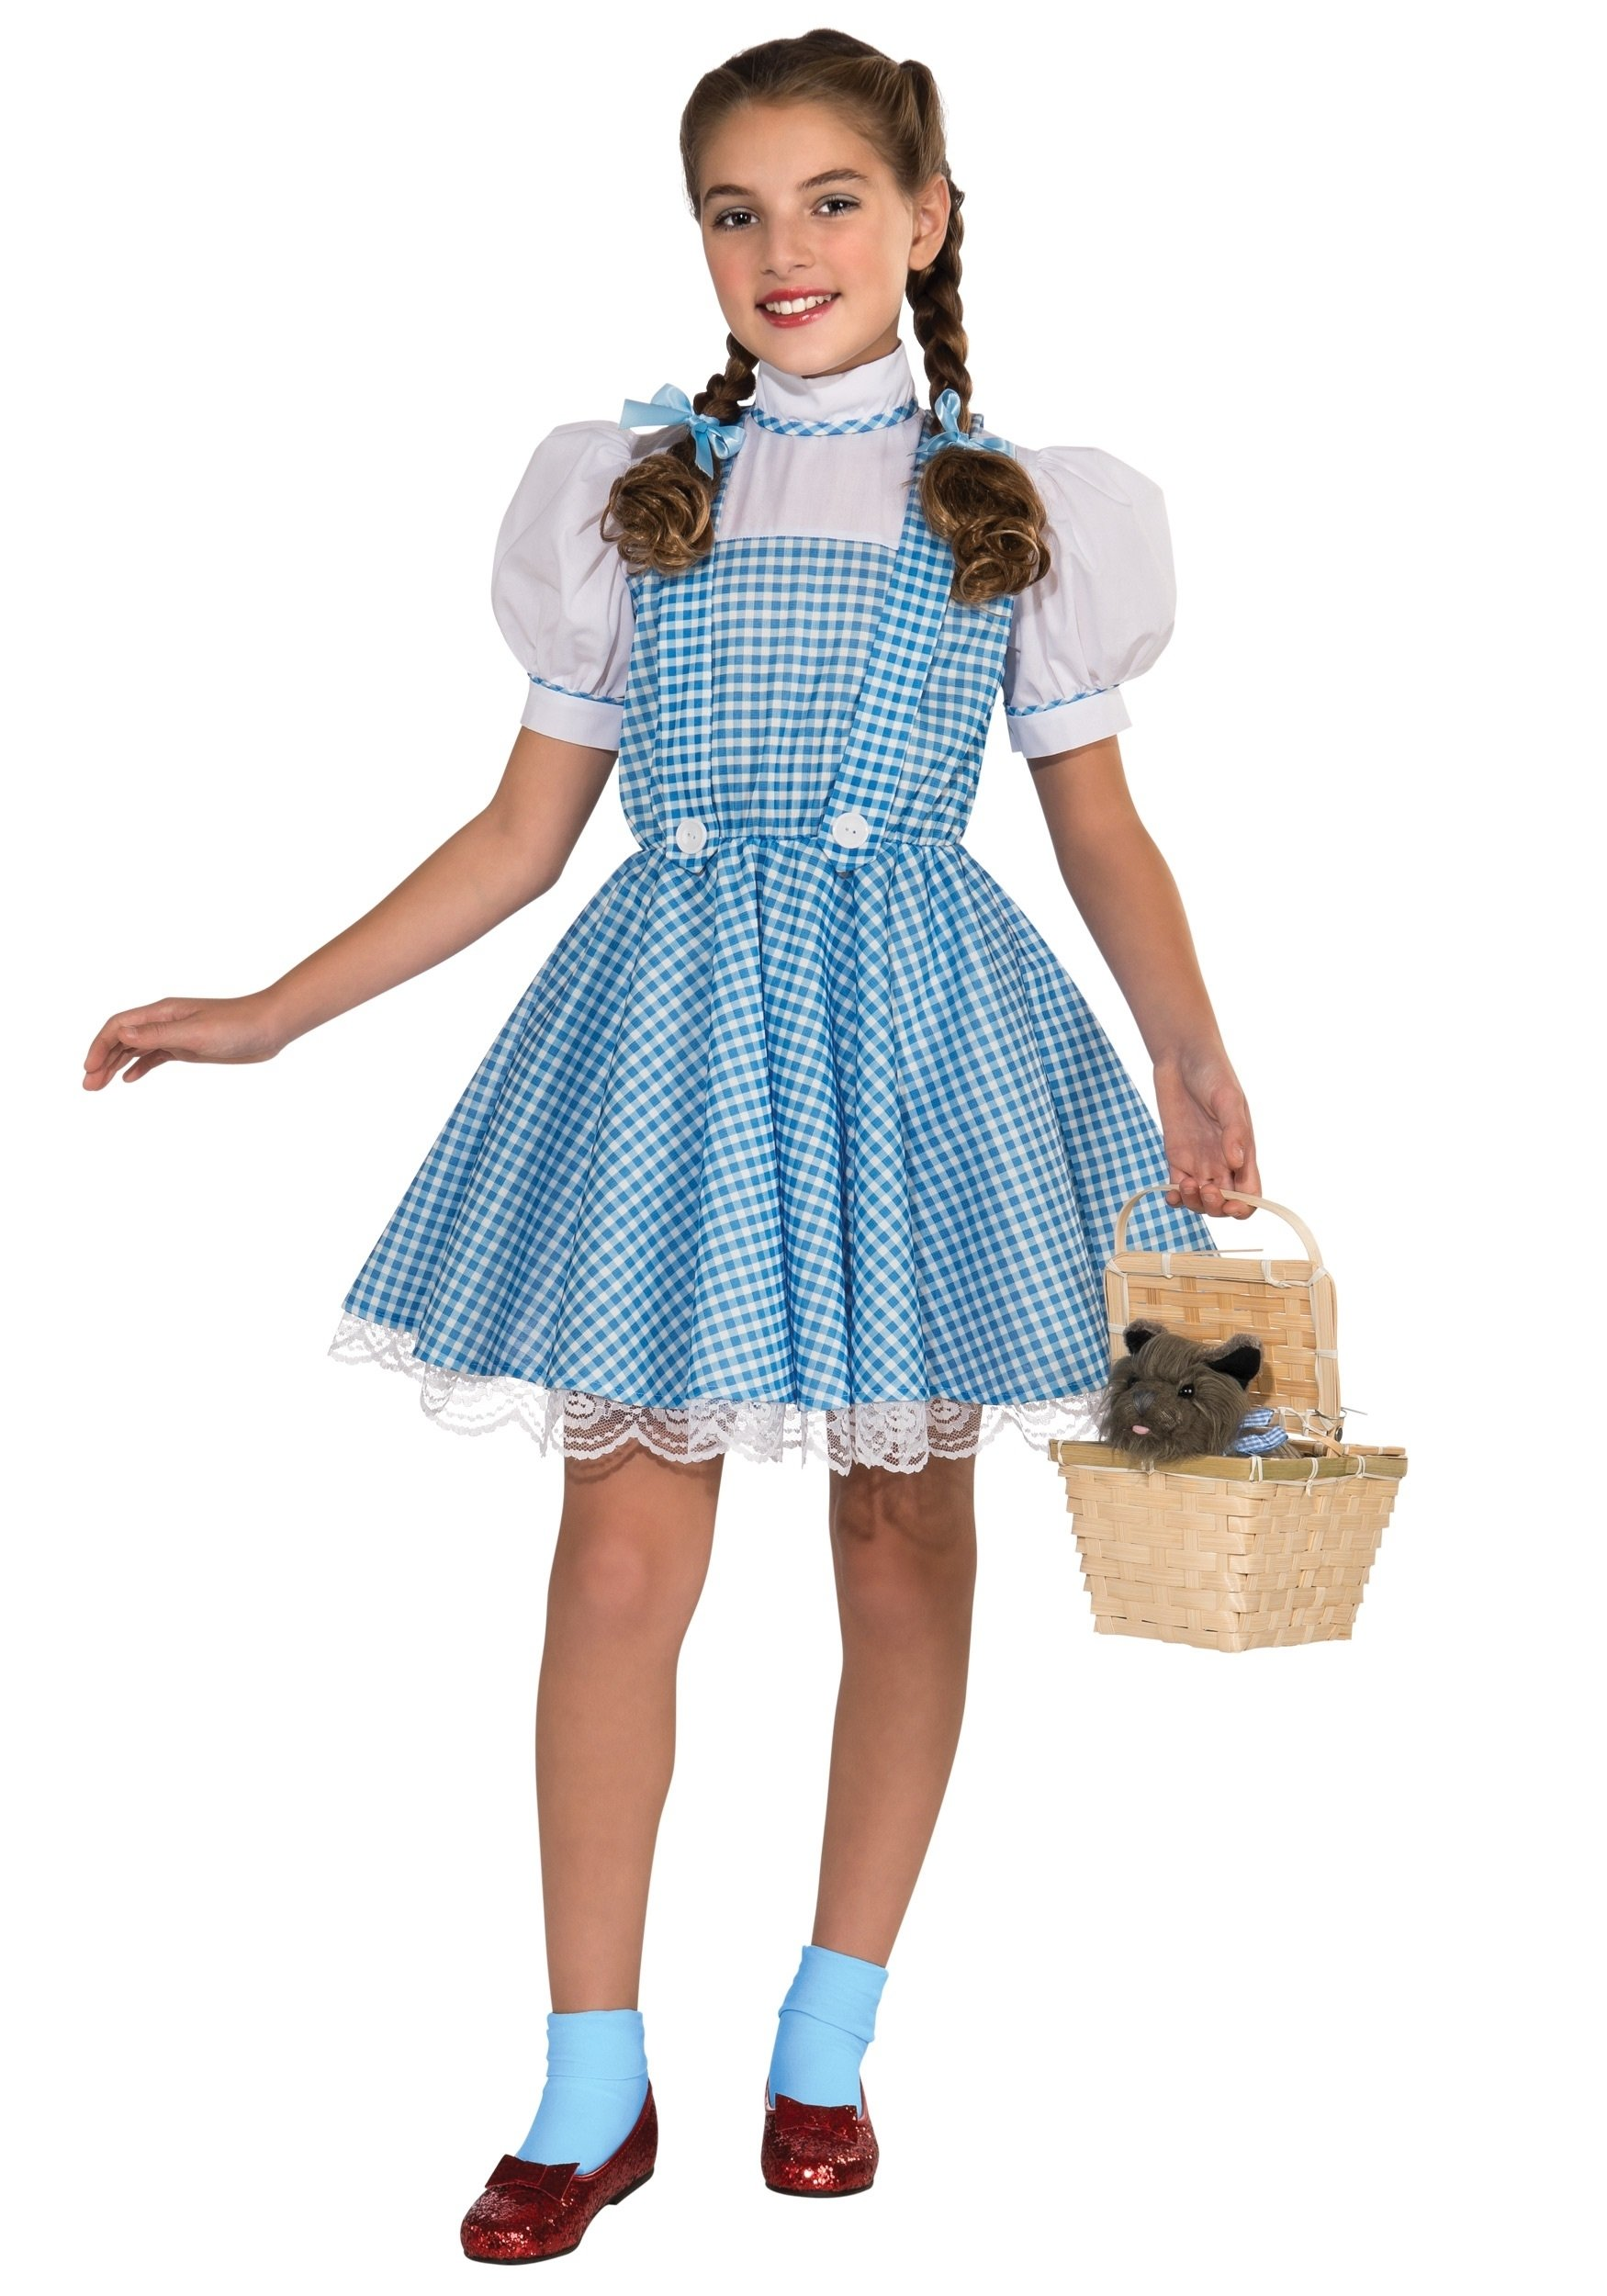 10 Nice Ideas For Halloween Costumes For Girls girls halloween costumes halloweencostumes 2020